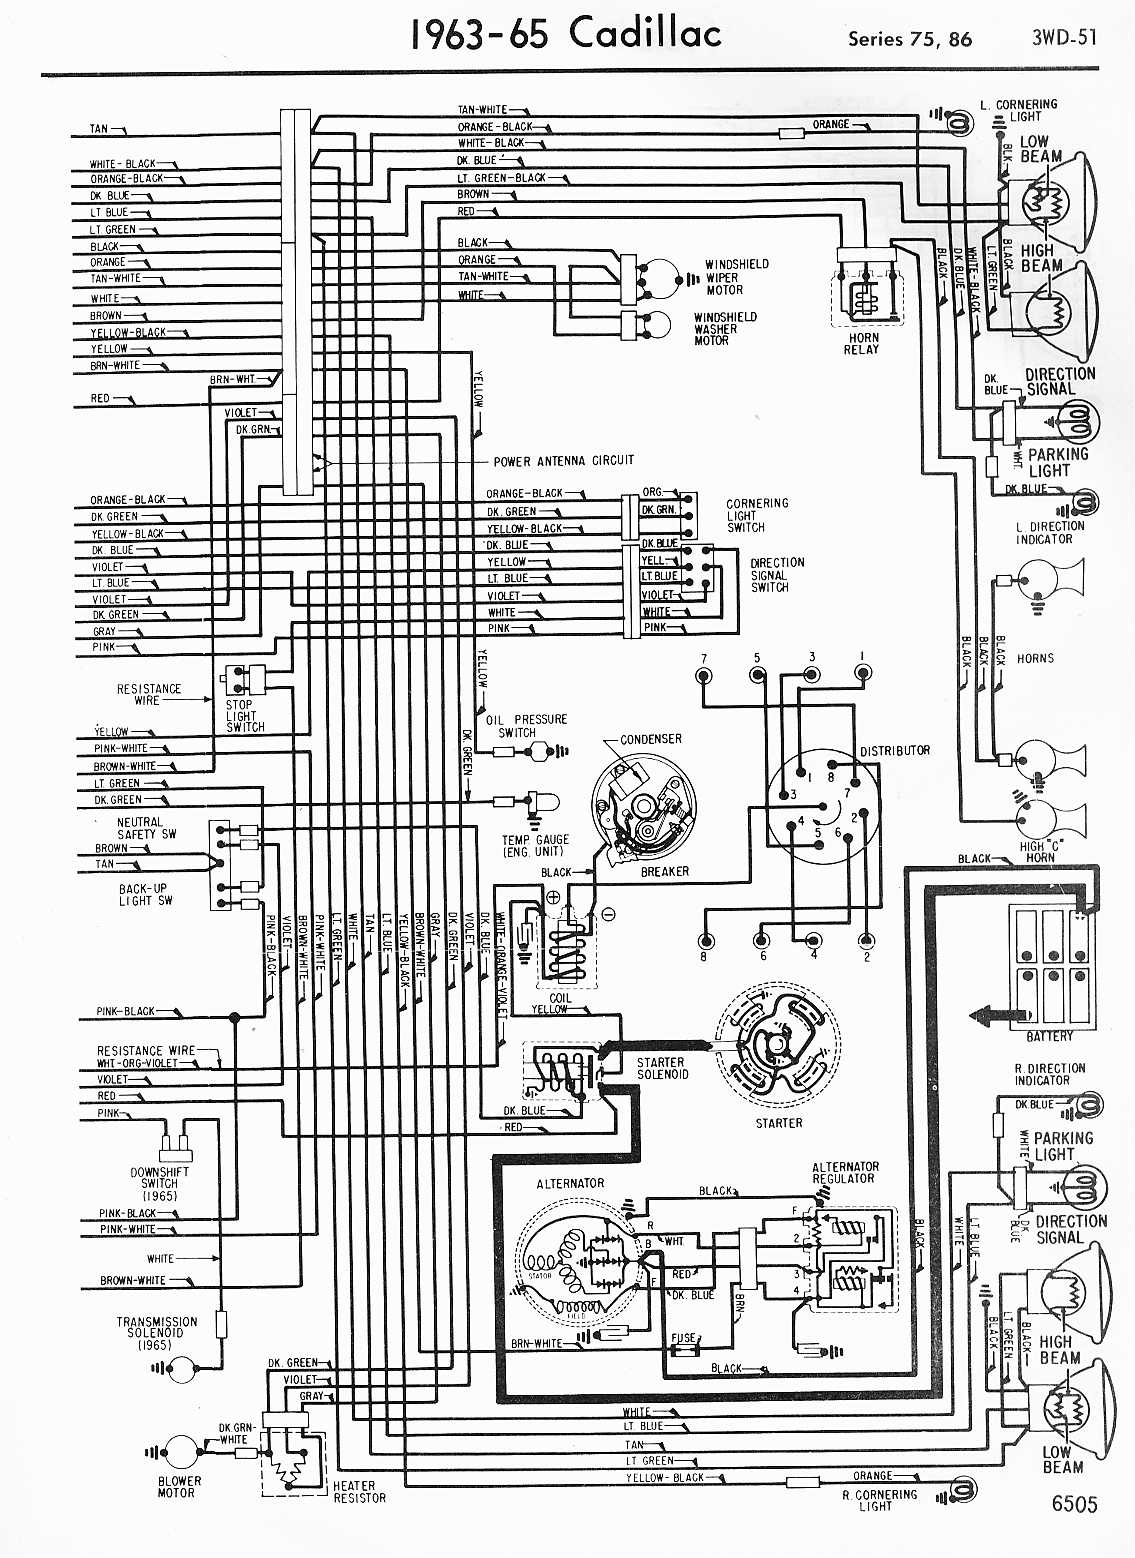 1951 ford turn signal wiring diagram free download wiring diagrams Battery Isolator Solenoid Diagram 1965 cadillac wiring diagram download wiring diagramcadillac wiring diagrams 1957 1965